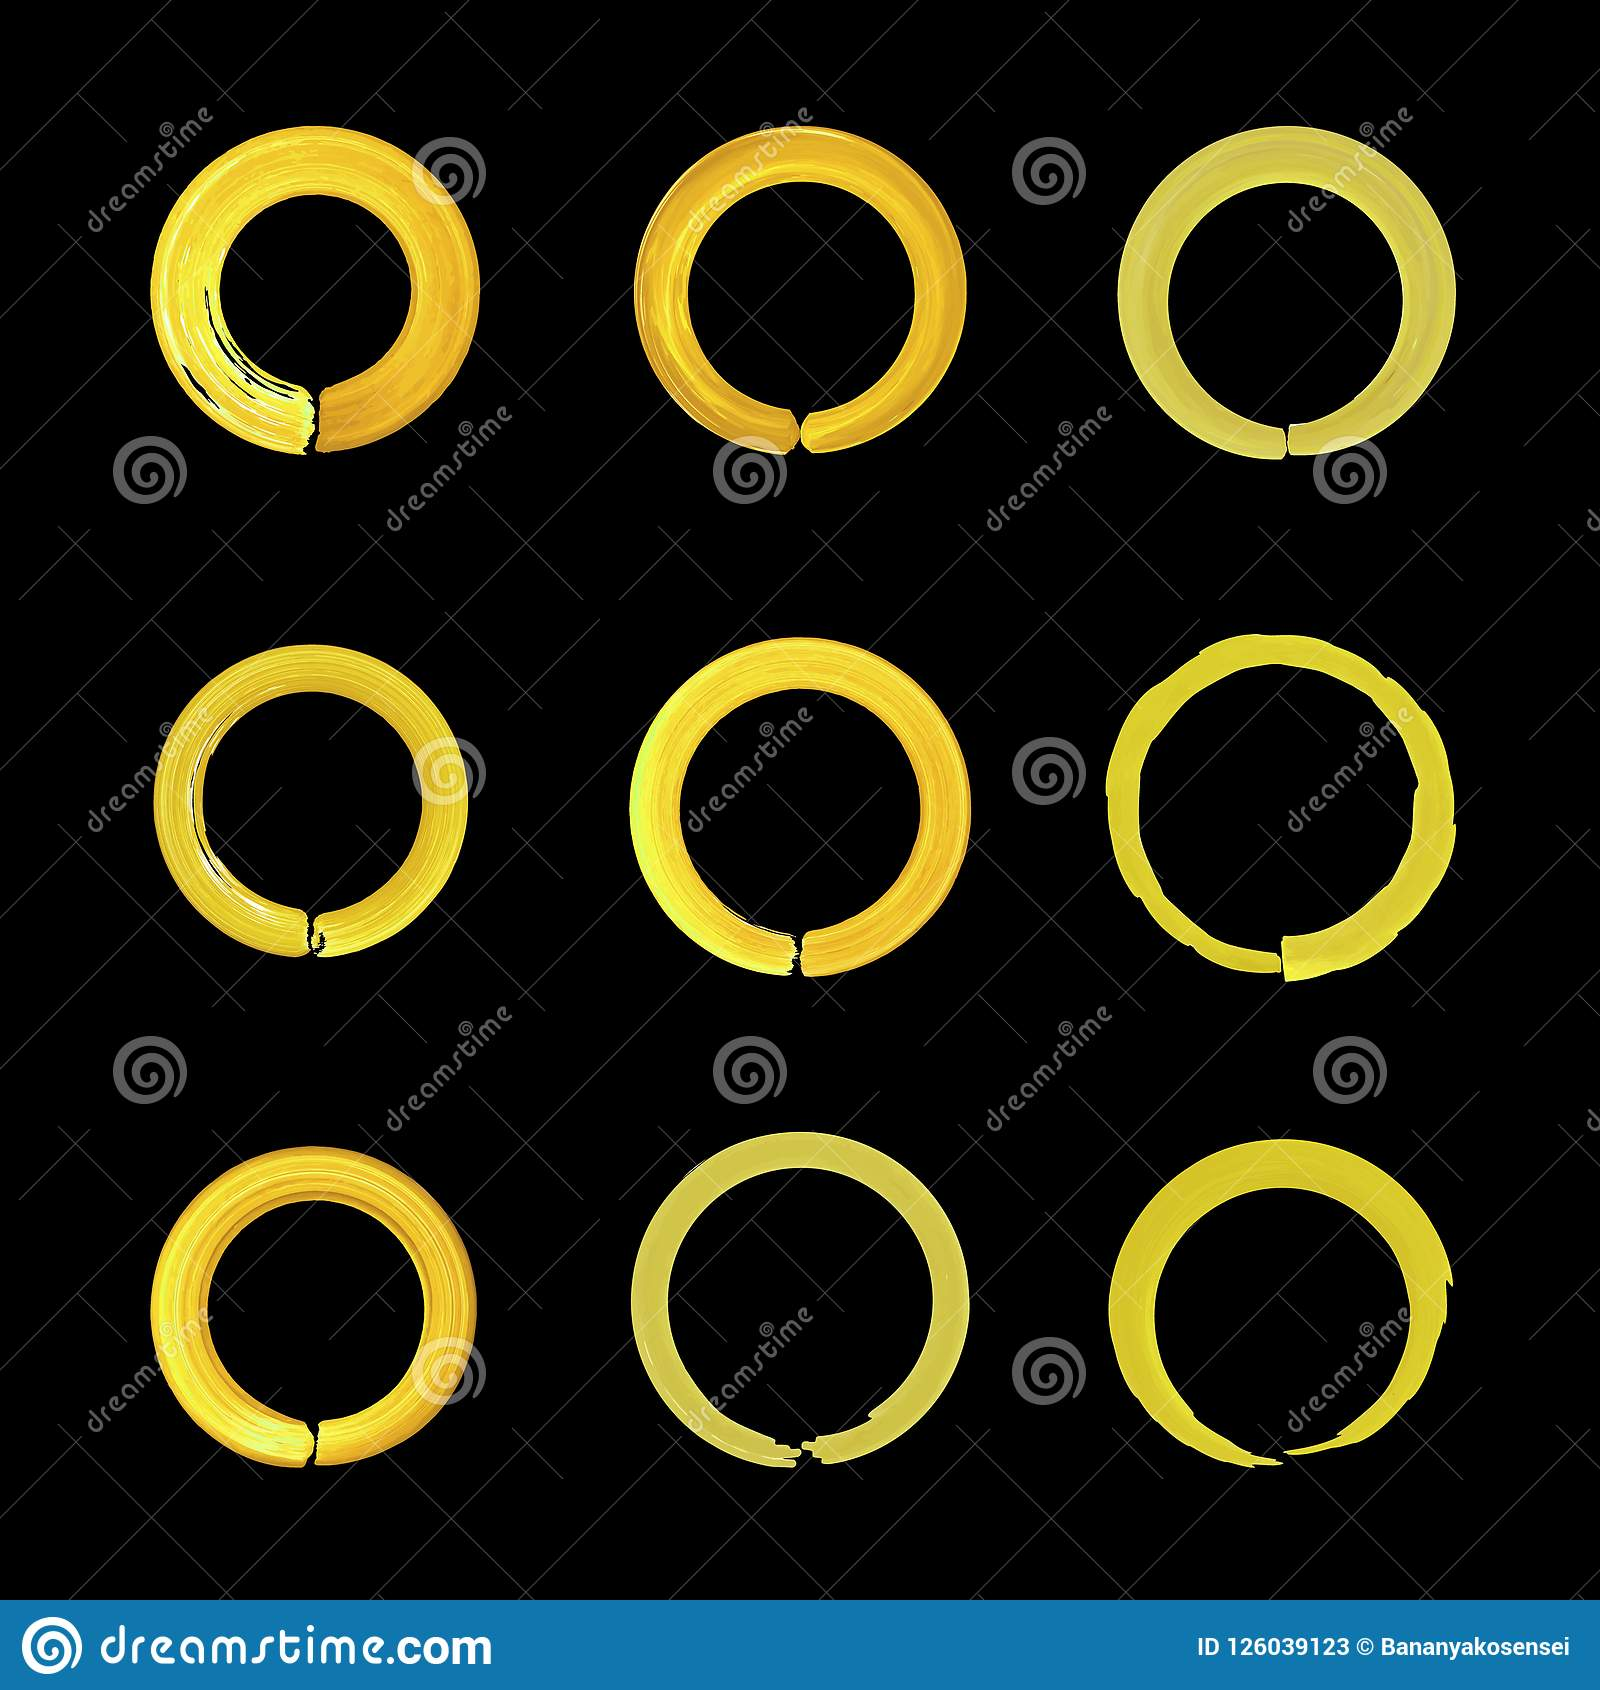 Vector Set of Bright Golden Circles, Isolated on Black Background Icons, Blank.